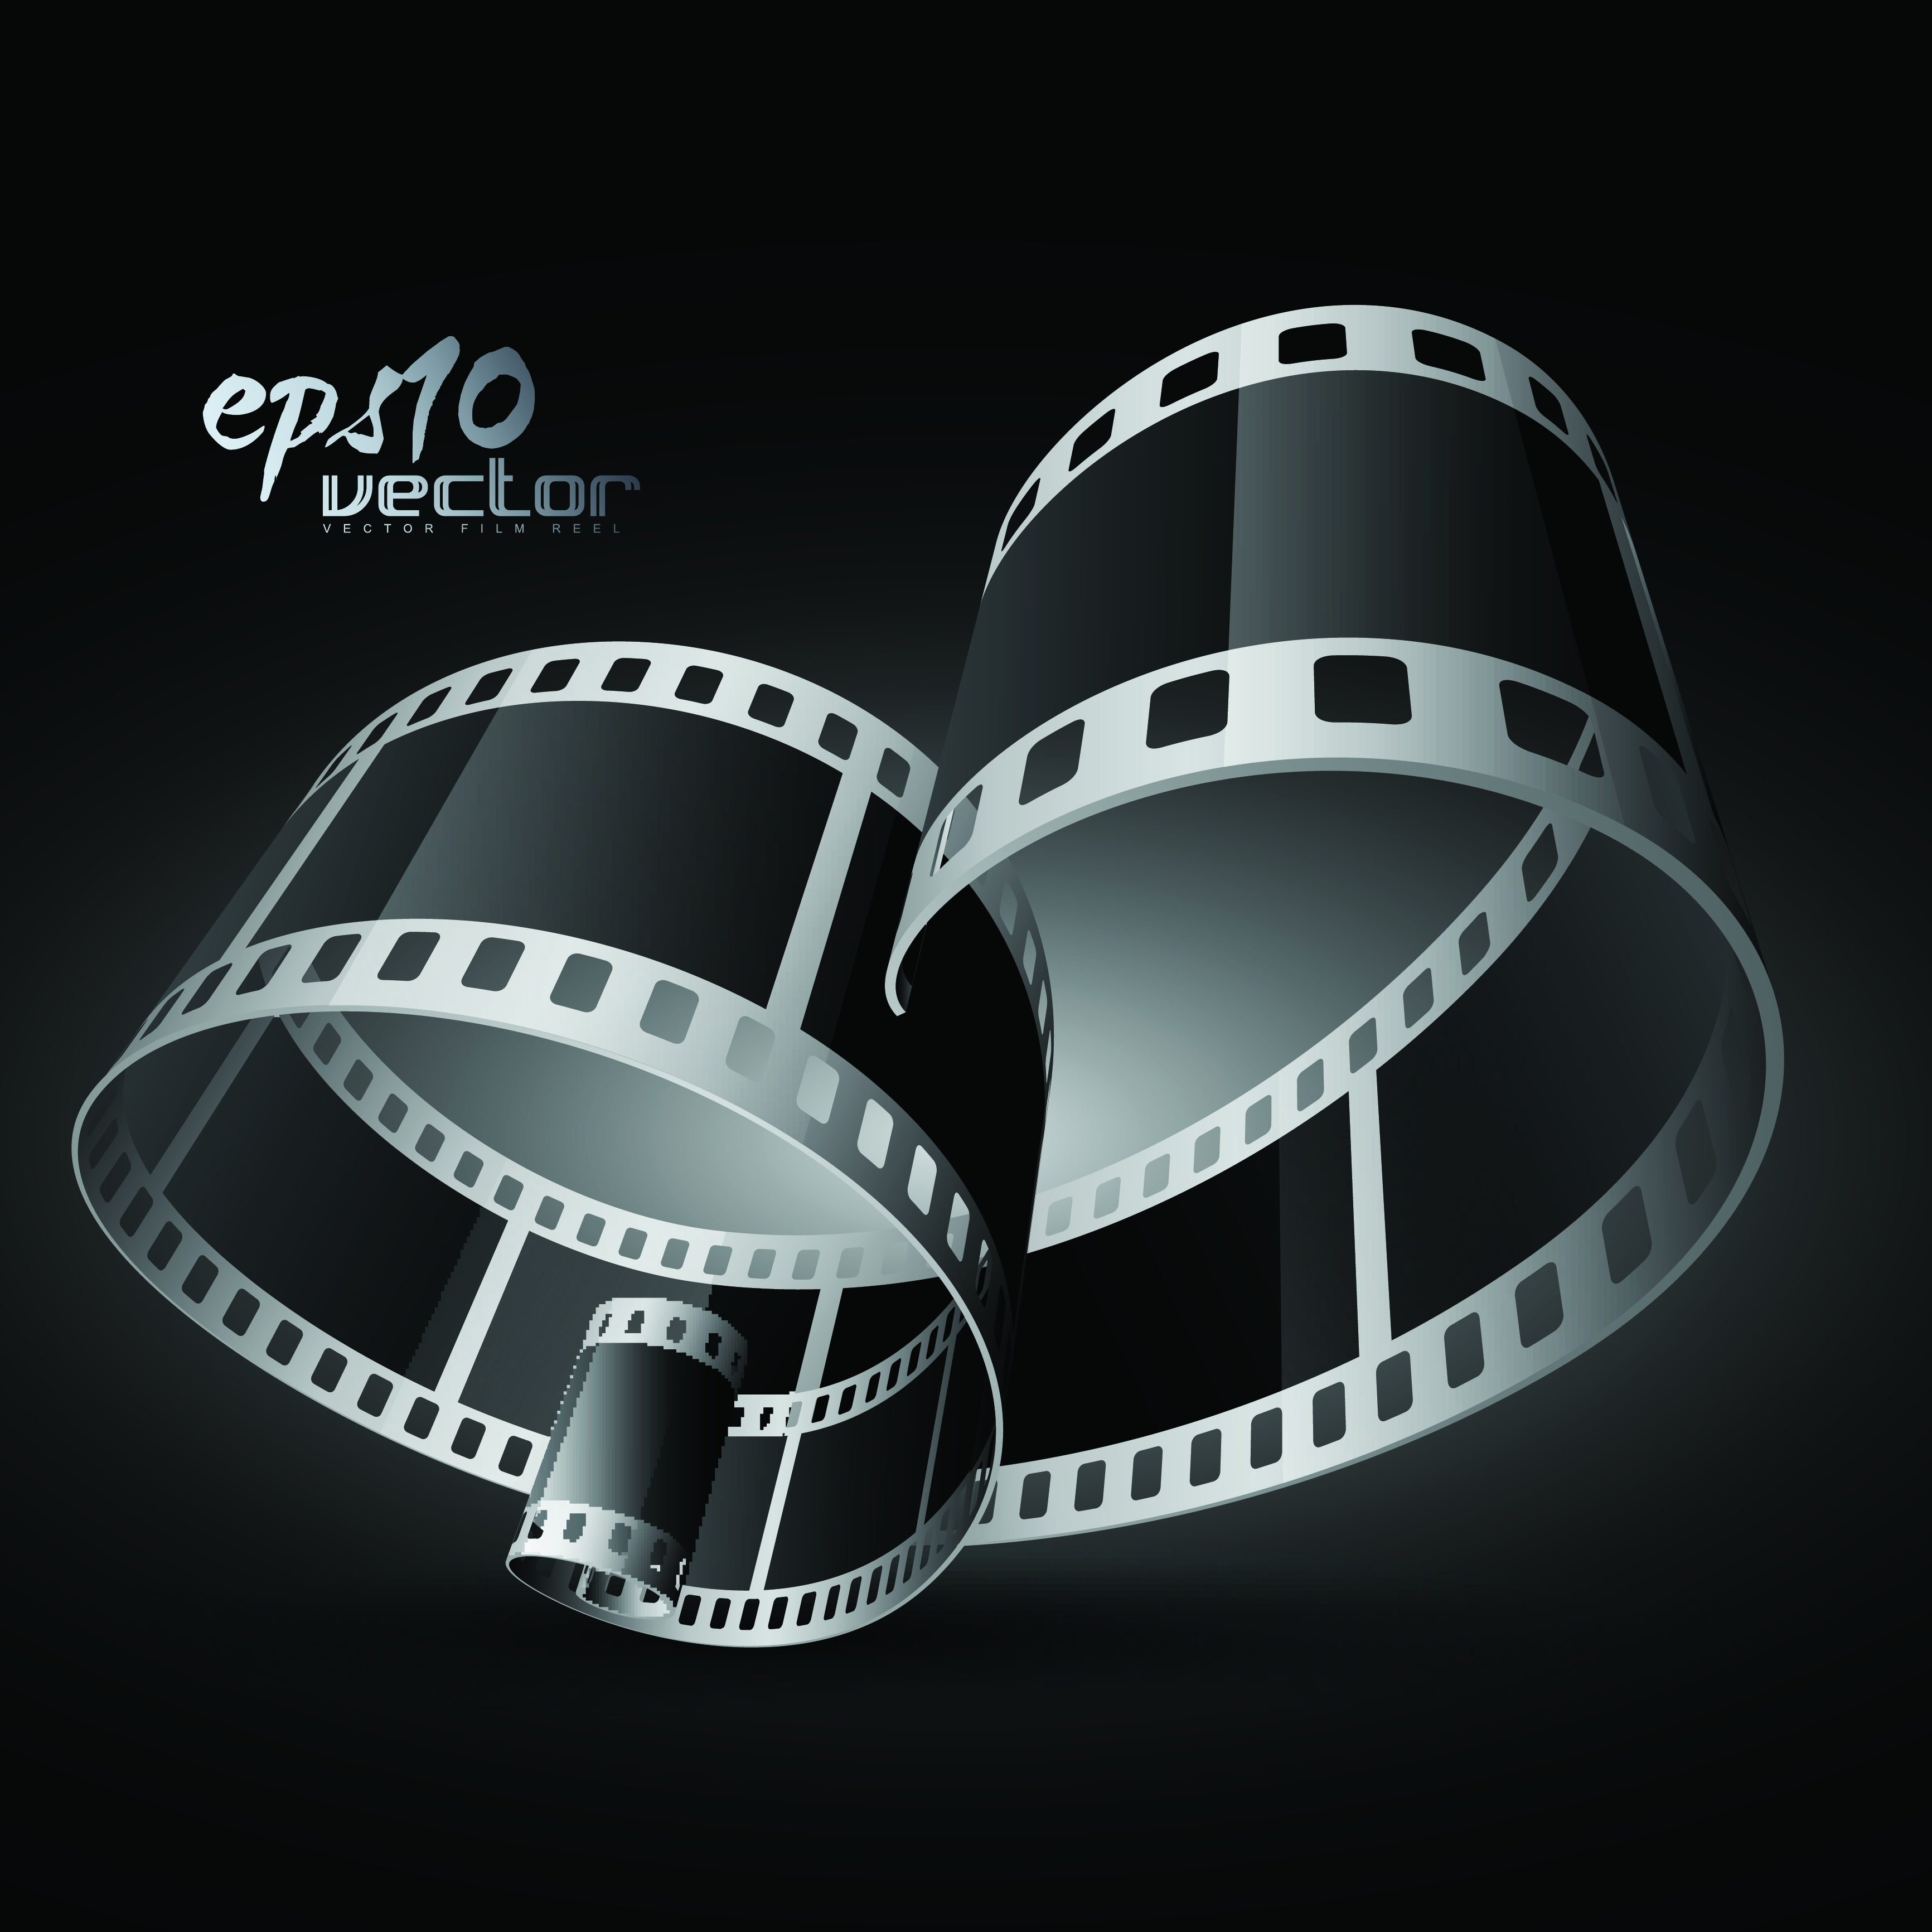 Black And White Film Clip Art 3d 1 Free Vector 4vector